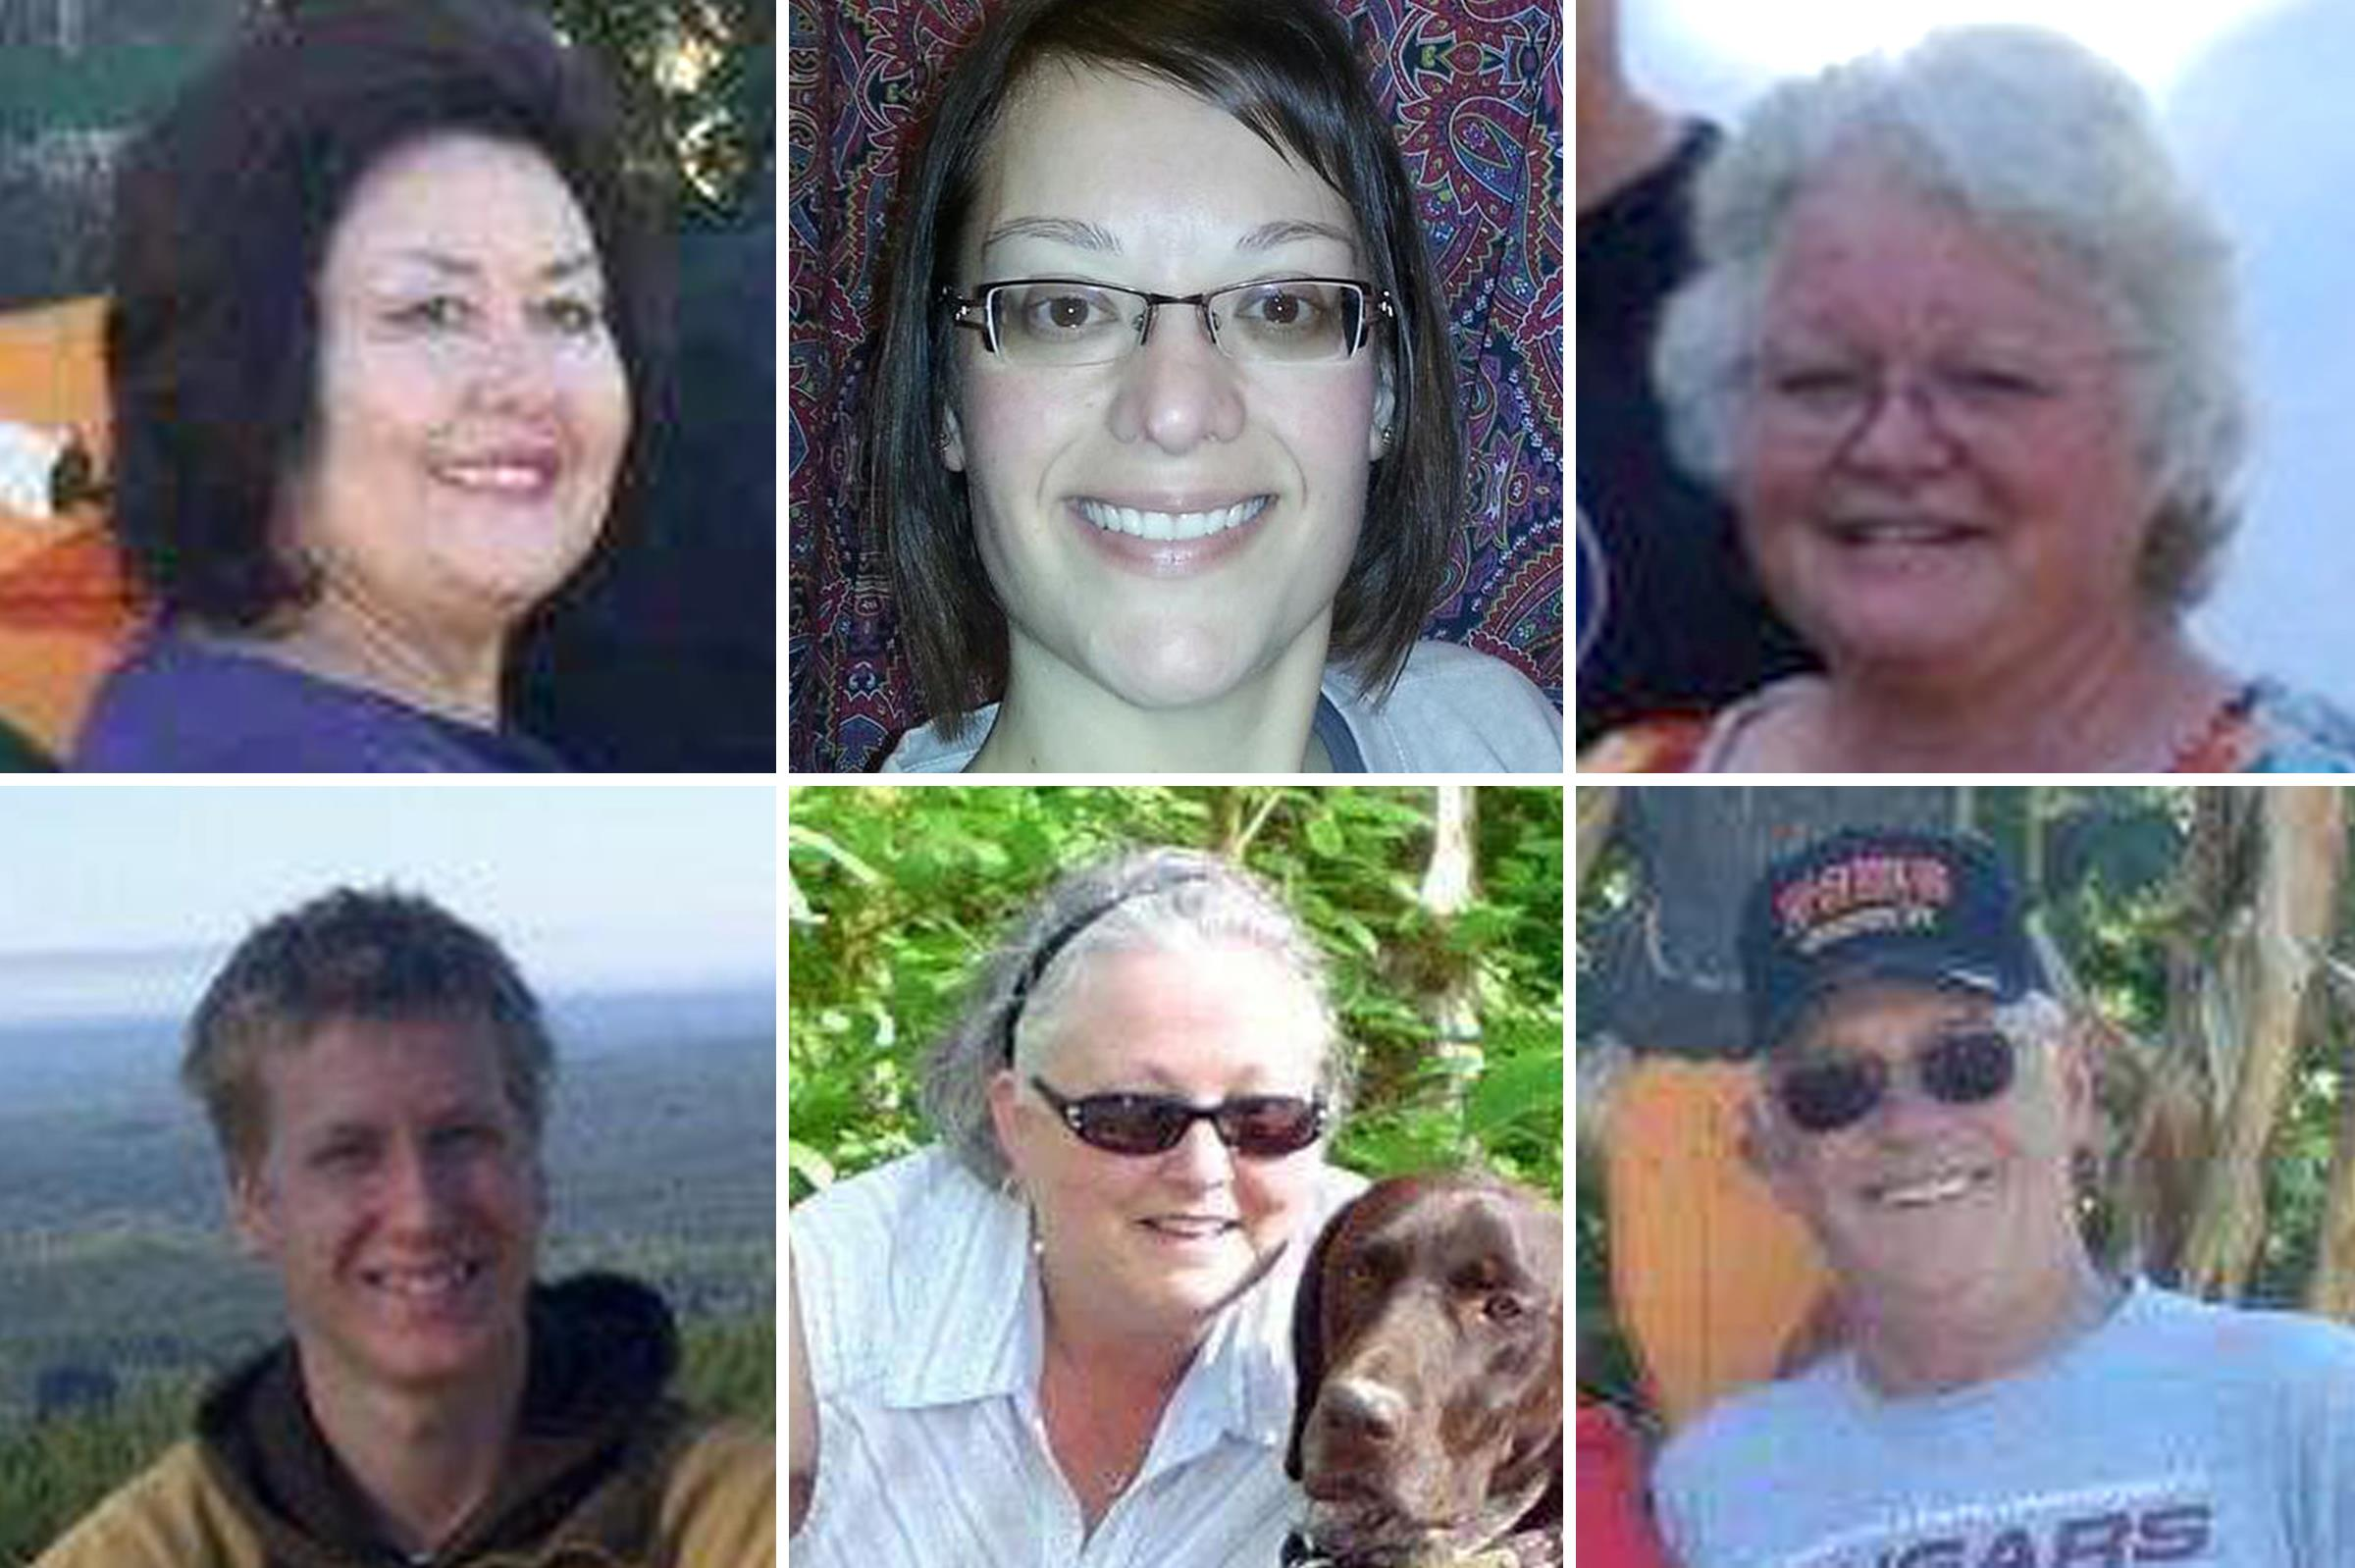 Image: Top row, from left: JuDee Vandenburg, Amanda Lennick, Julie Farnes; Bottom: Alan Bejvl, Brandy Ward, Lou Vandenburg.